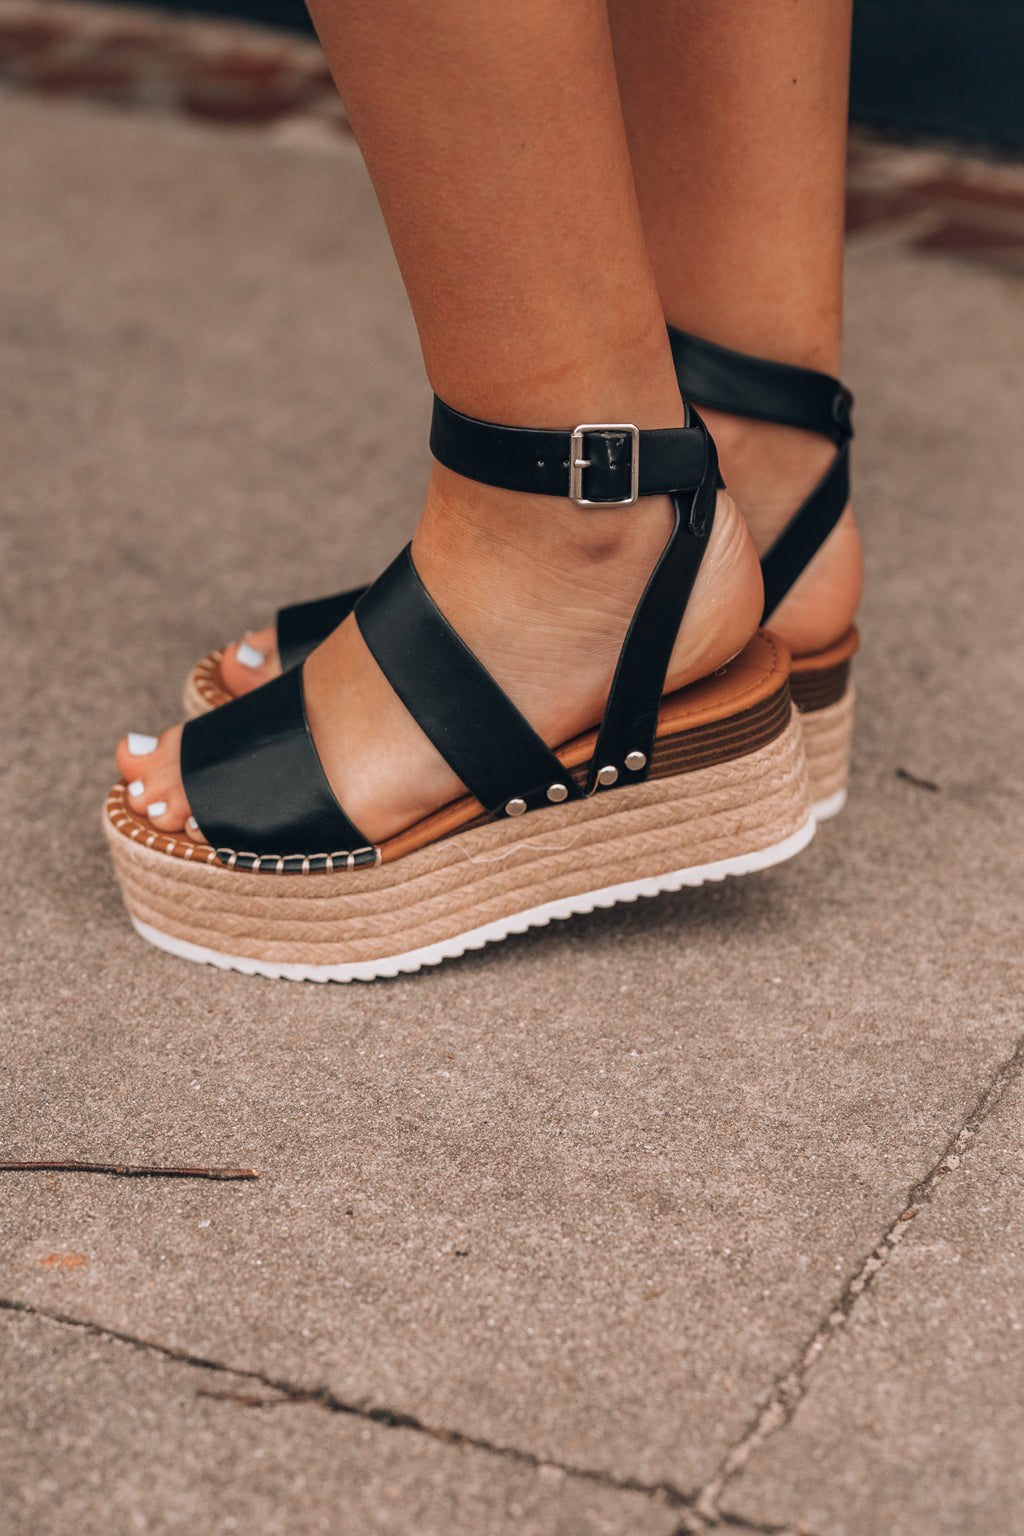 What's Up Platform Sandals (Black)